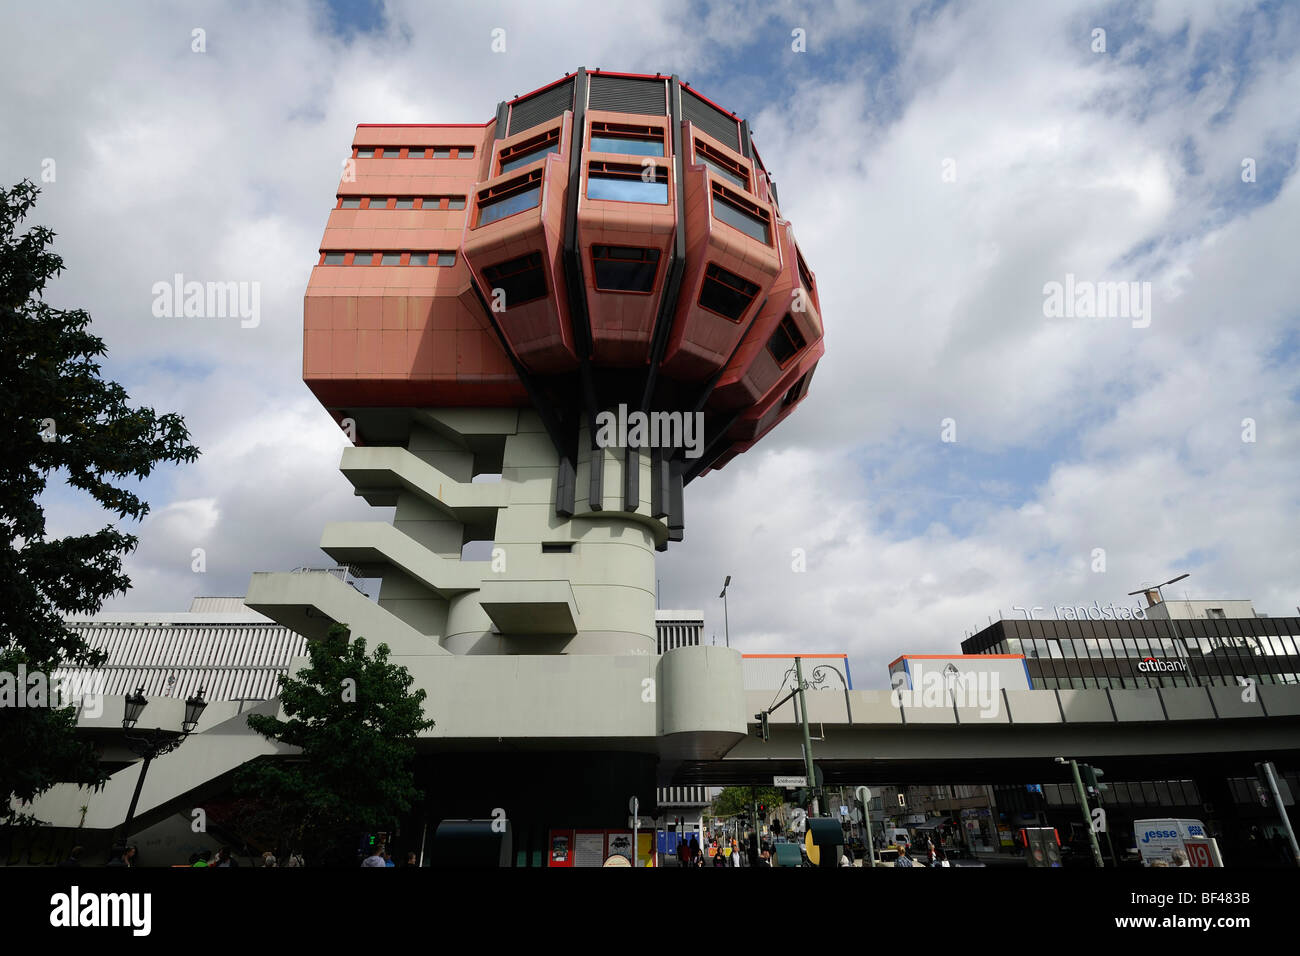 Berlin. Germany. Bierpinsel, unusual 1970's bar & restaurant building in Stegliz. Stock Photo